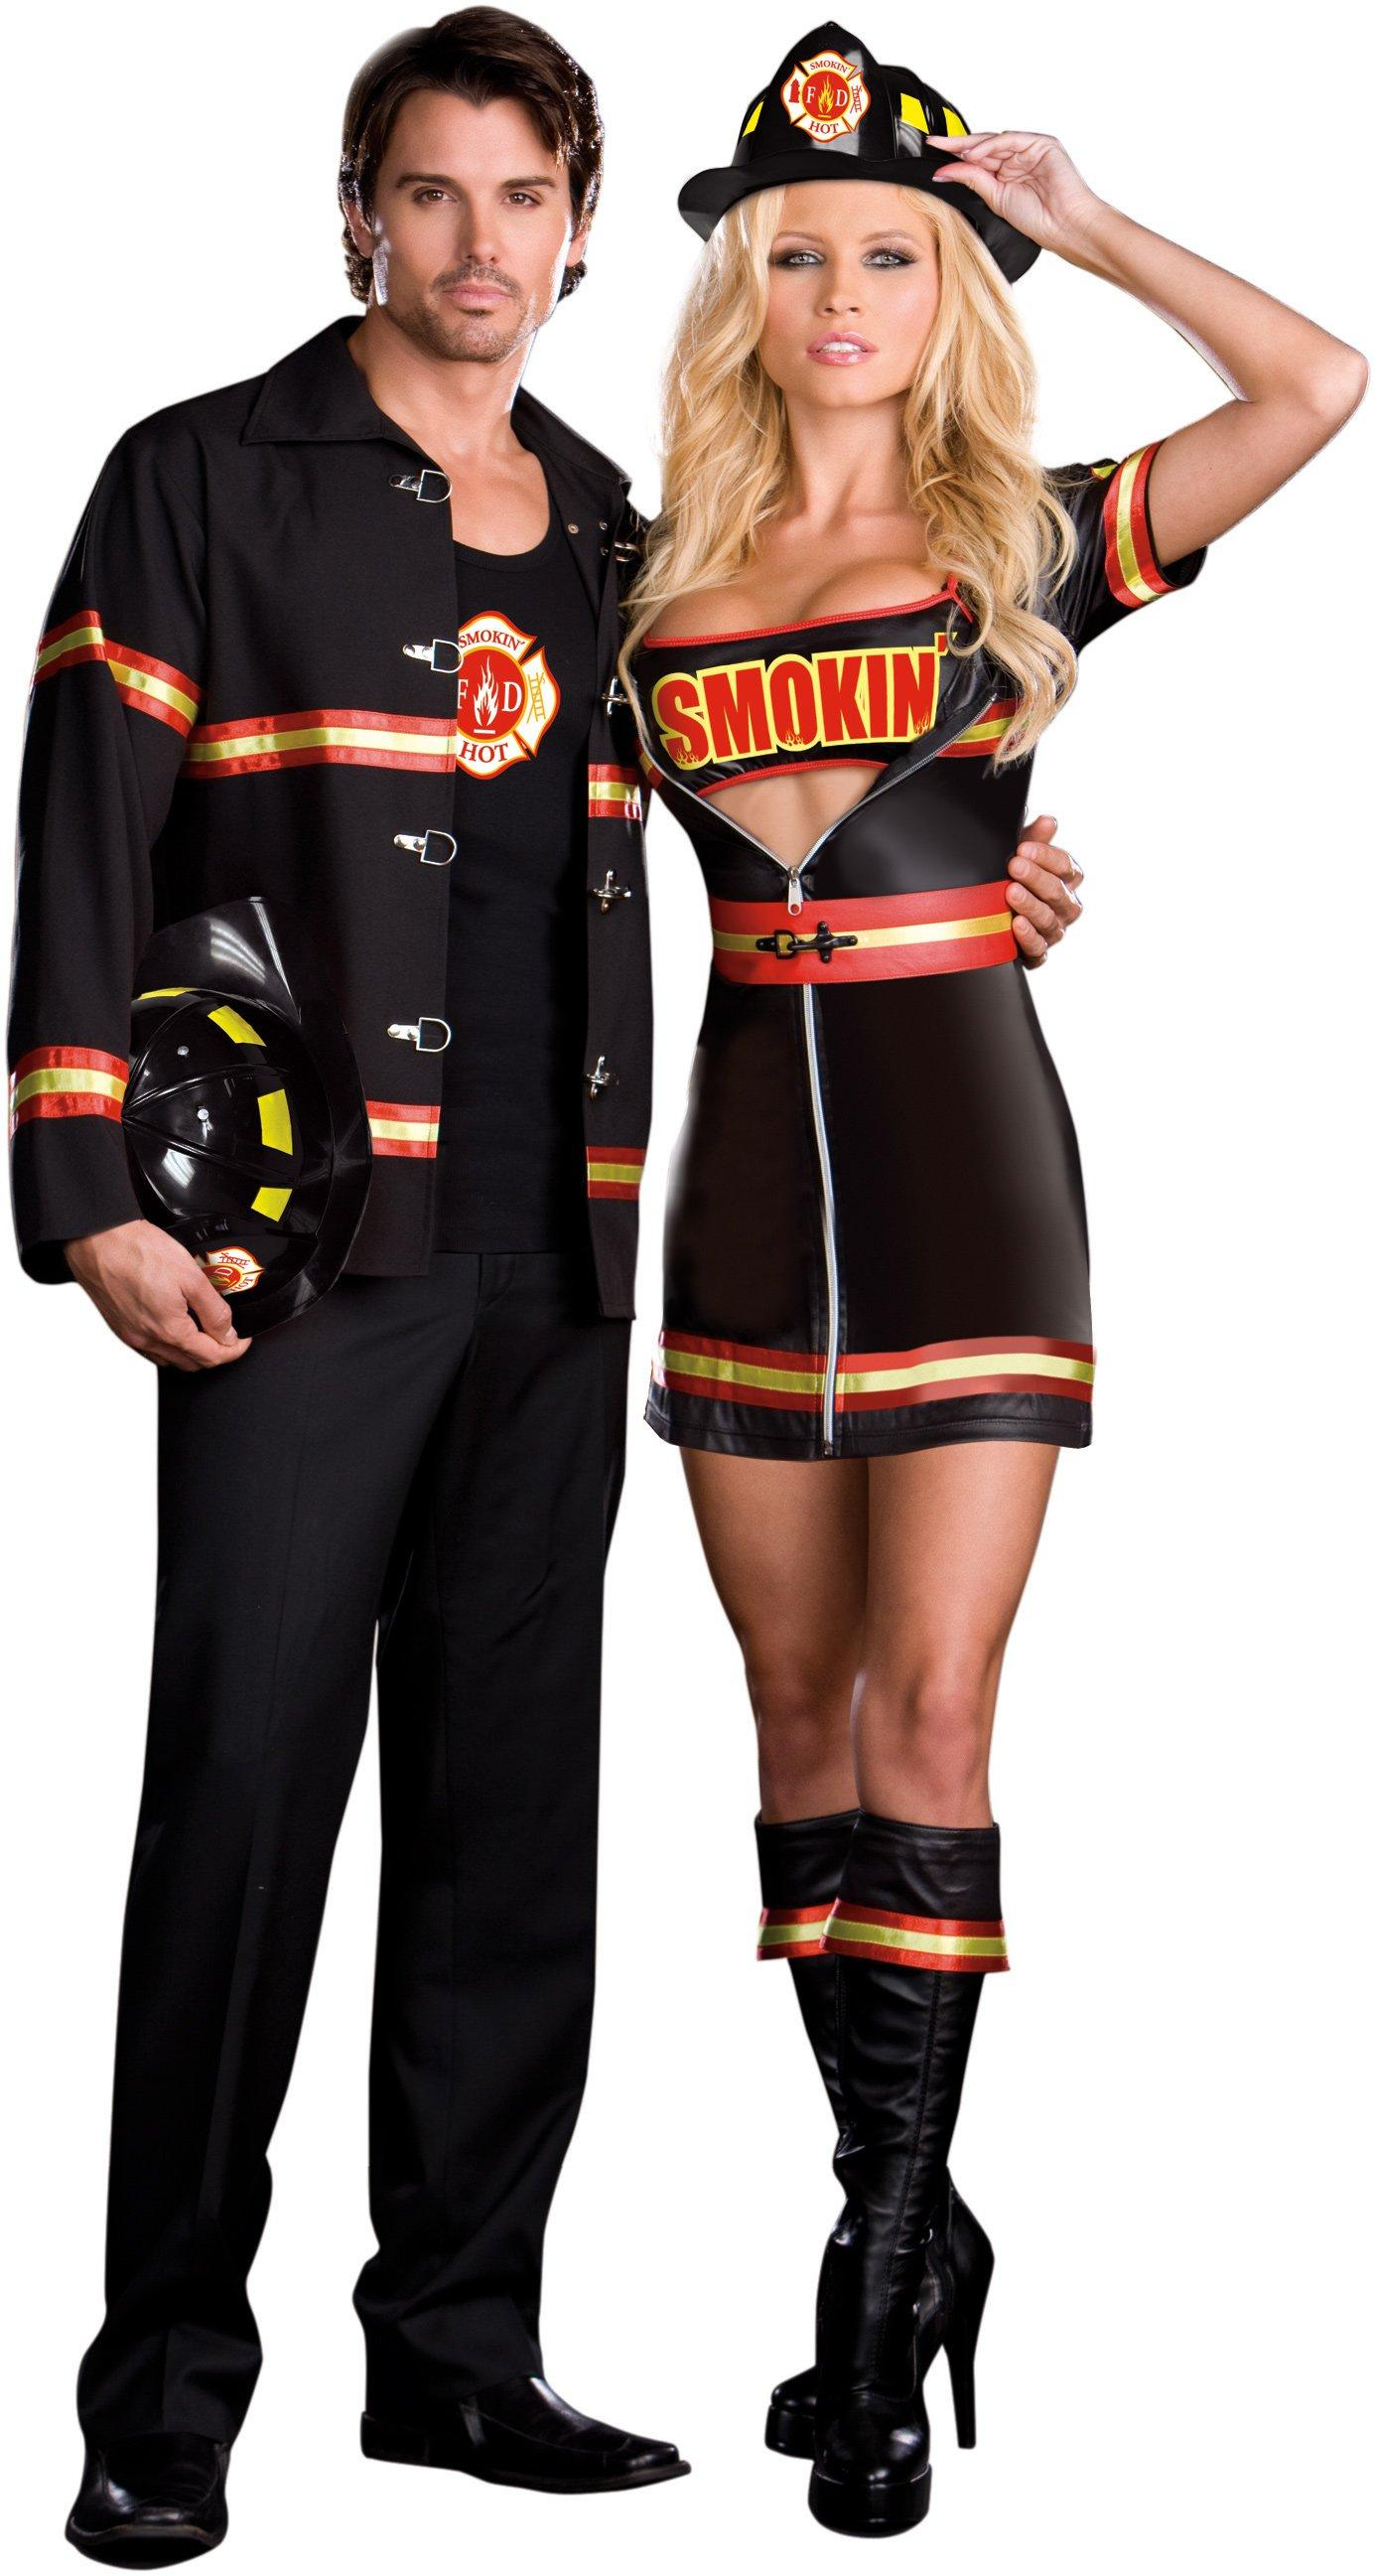 Couples Costumes Ideas 3  sc 1 st  WCCB Charlotte & Couples Costumes Ideas 3 - WCCB Charlotte